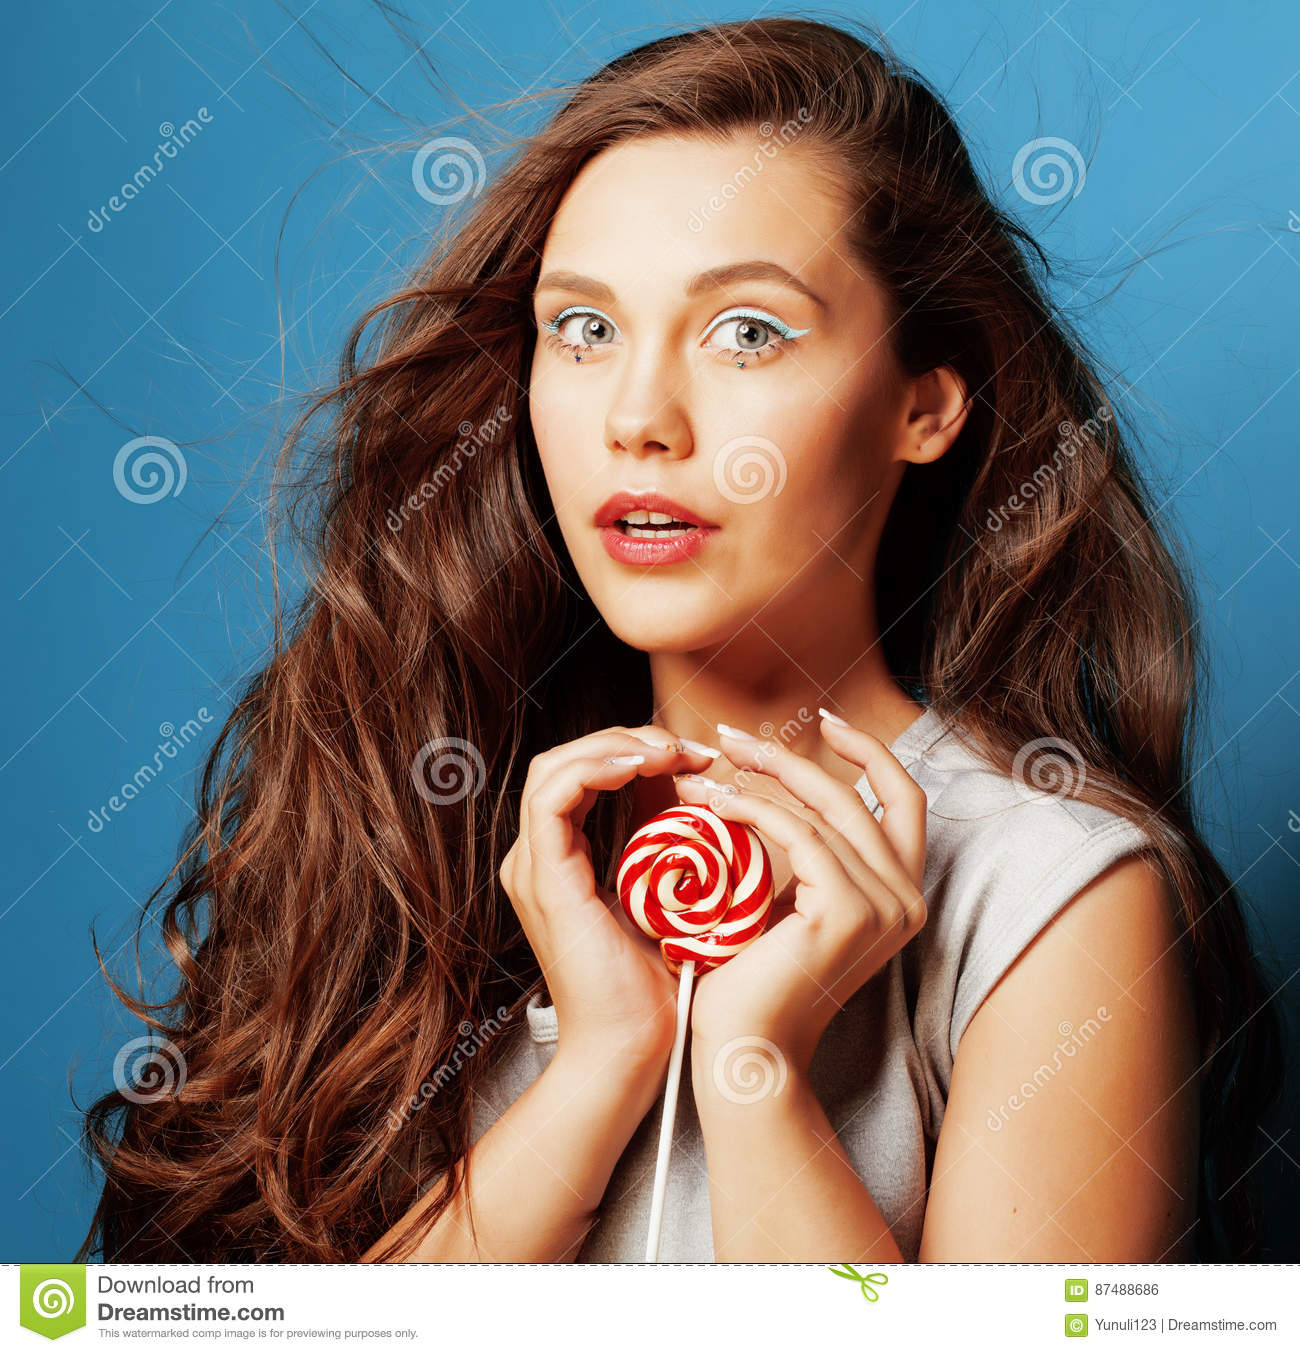 Candy doll stock photos royalty free stock images young pretty adorable woman with candy close up like doll makeup royalty free stock image voltagebd Gallery